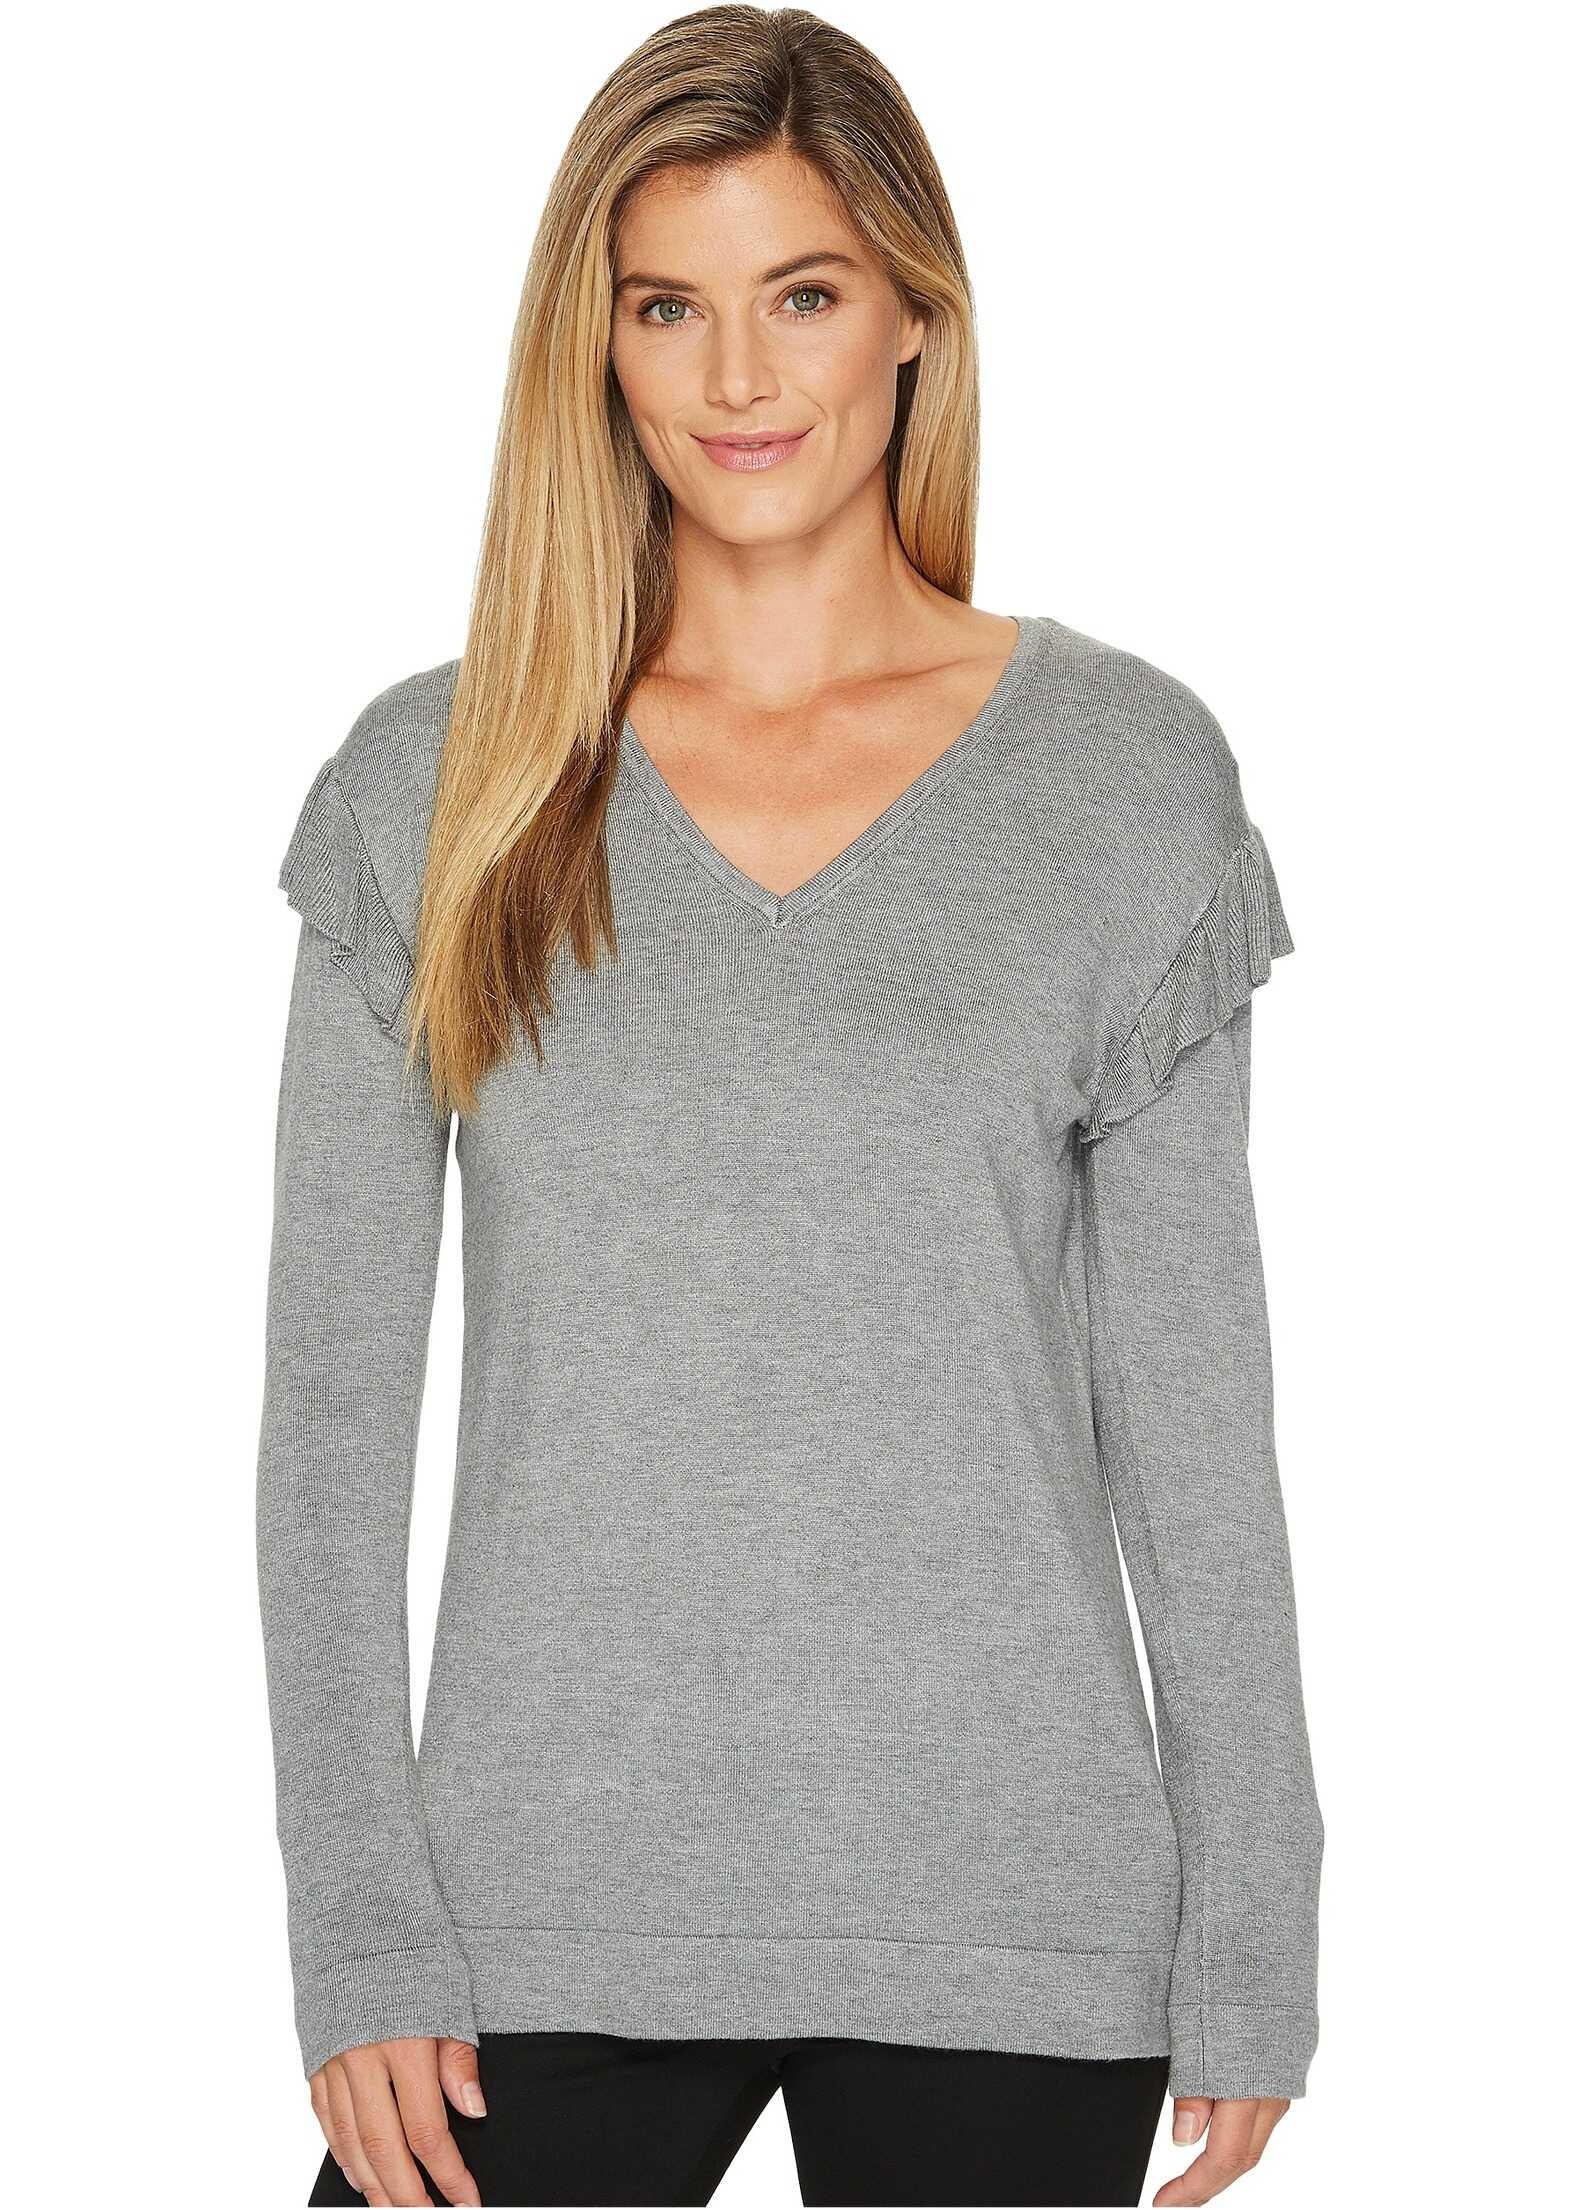 Calvin Klein V-Neck with Ruffle Sleeve Heather Granite